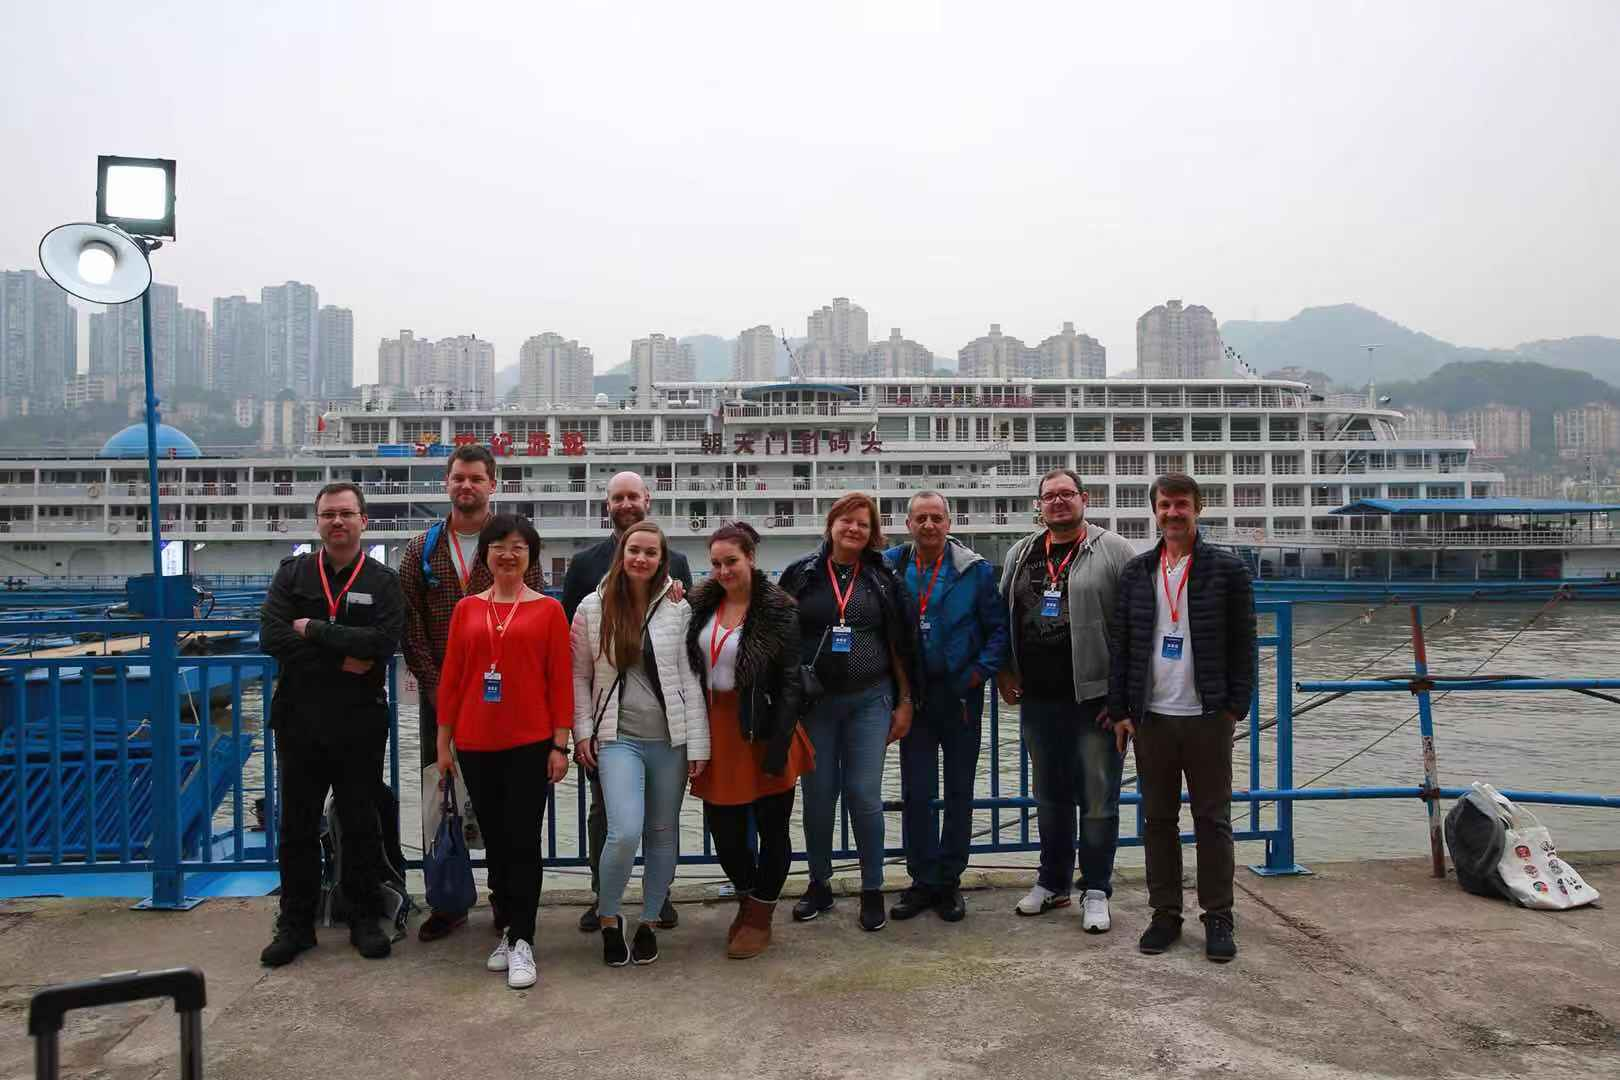 Foreign guests took group picture in front of the Century Diemond Cruise